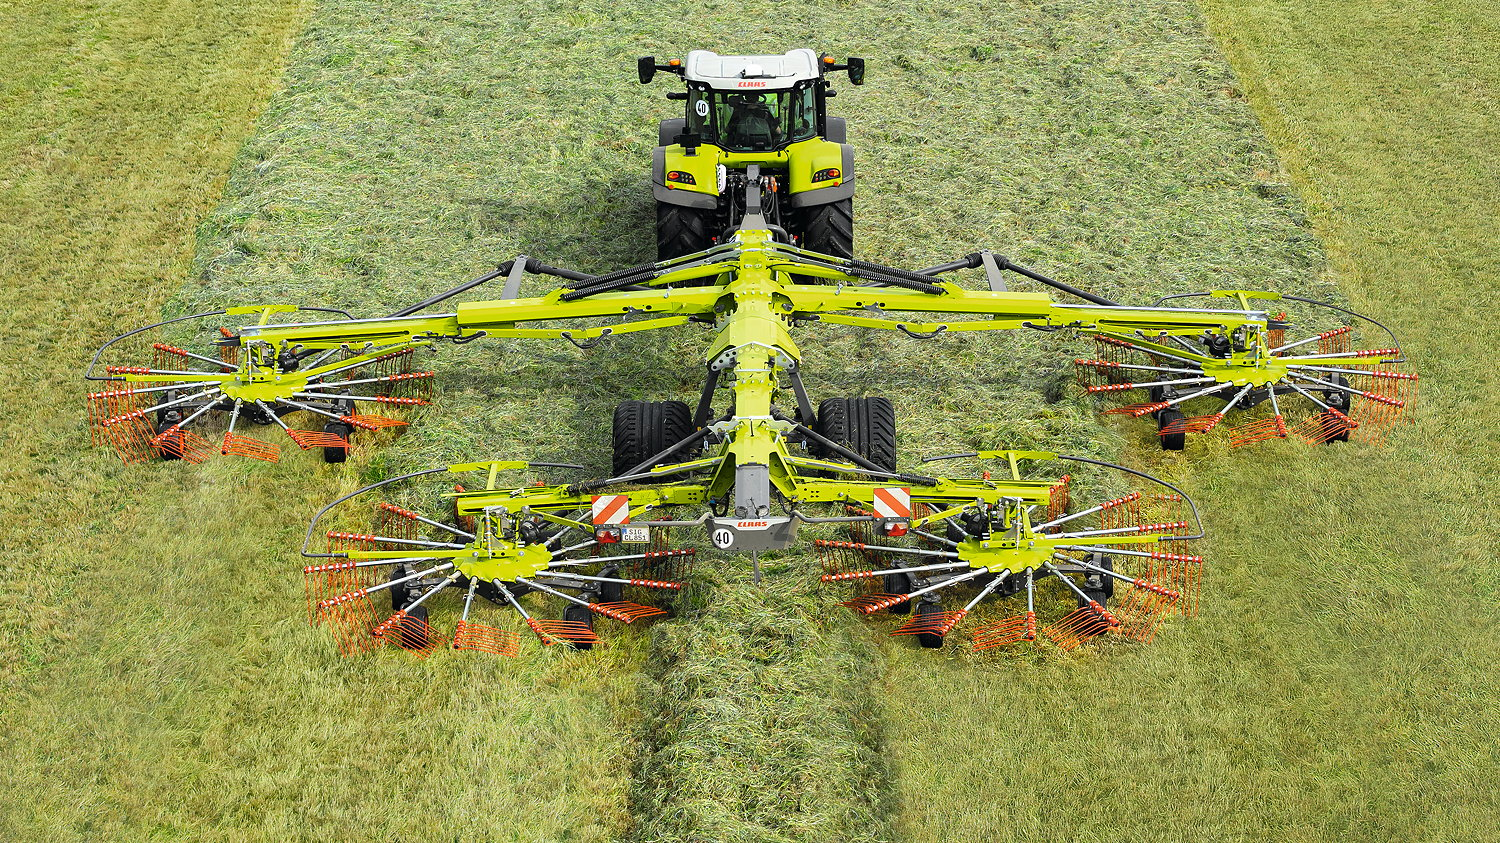 The 2022 four-rotor Claas Liner range offers working widths up to 15.0m